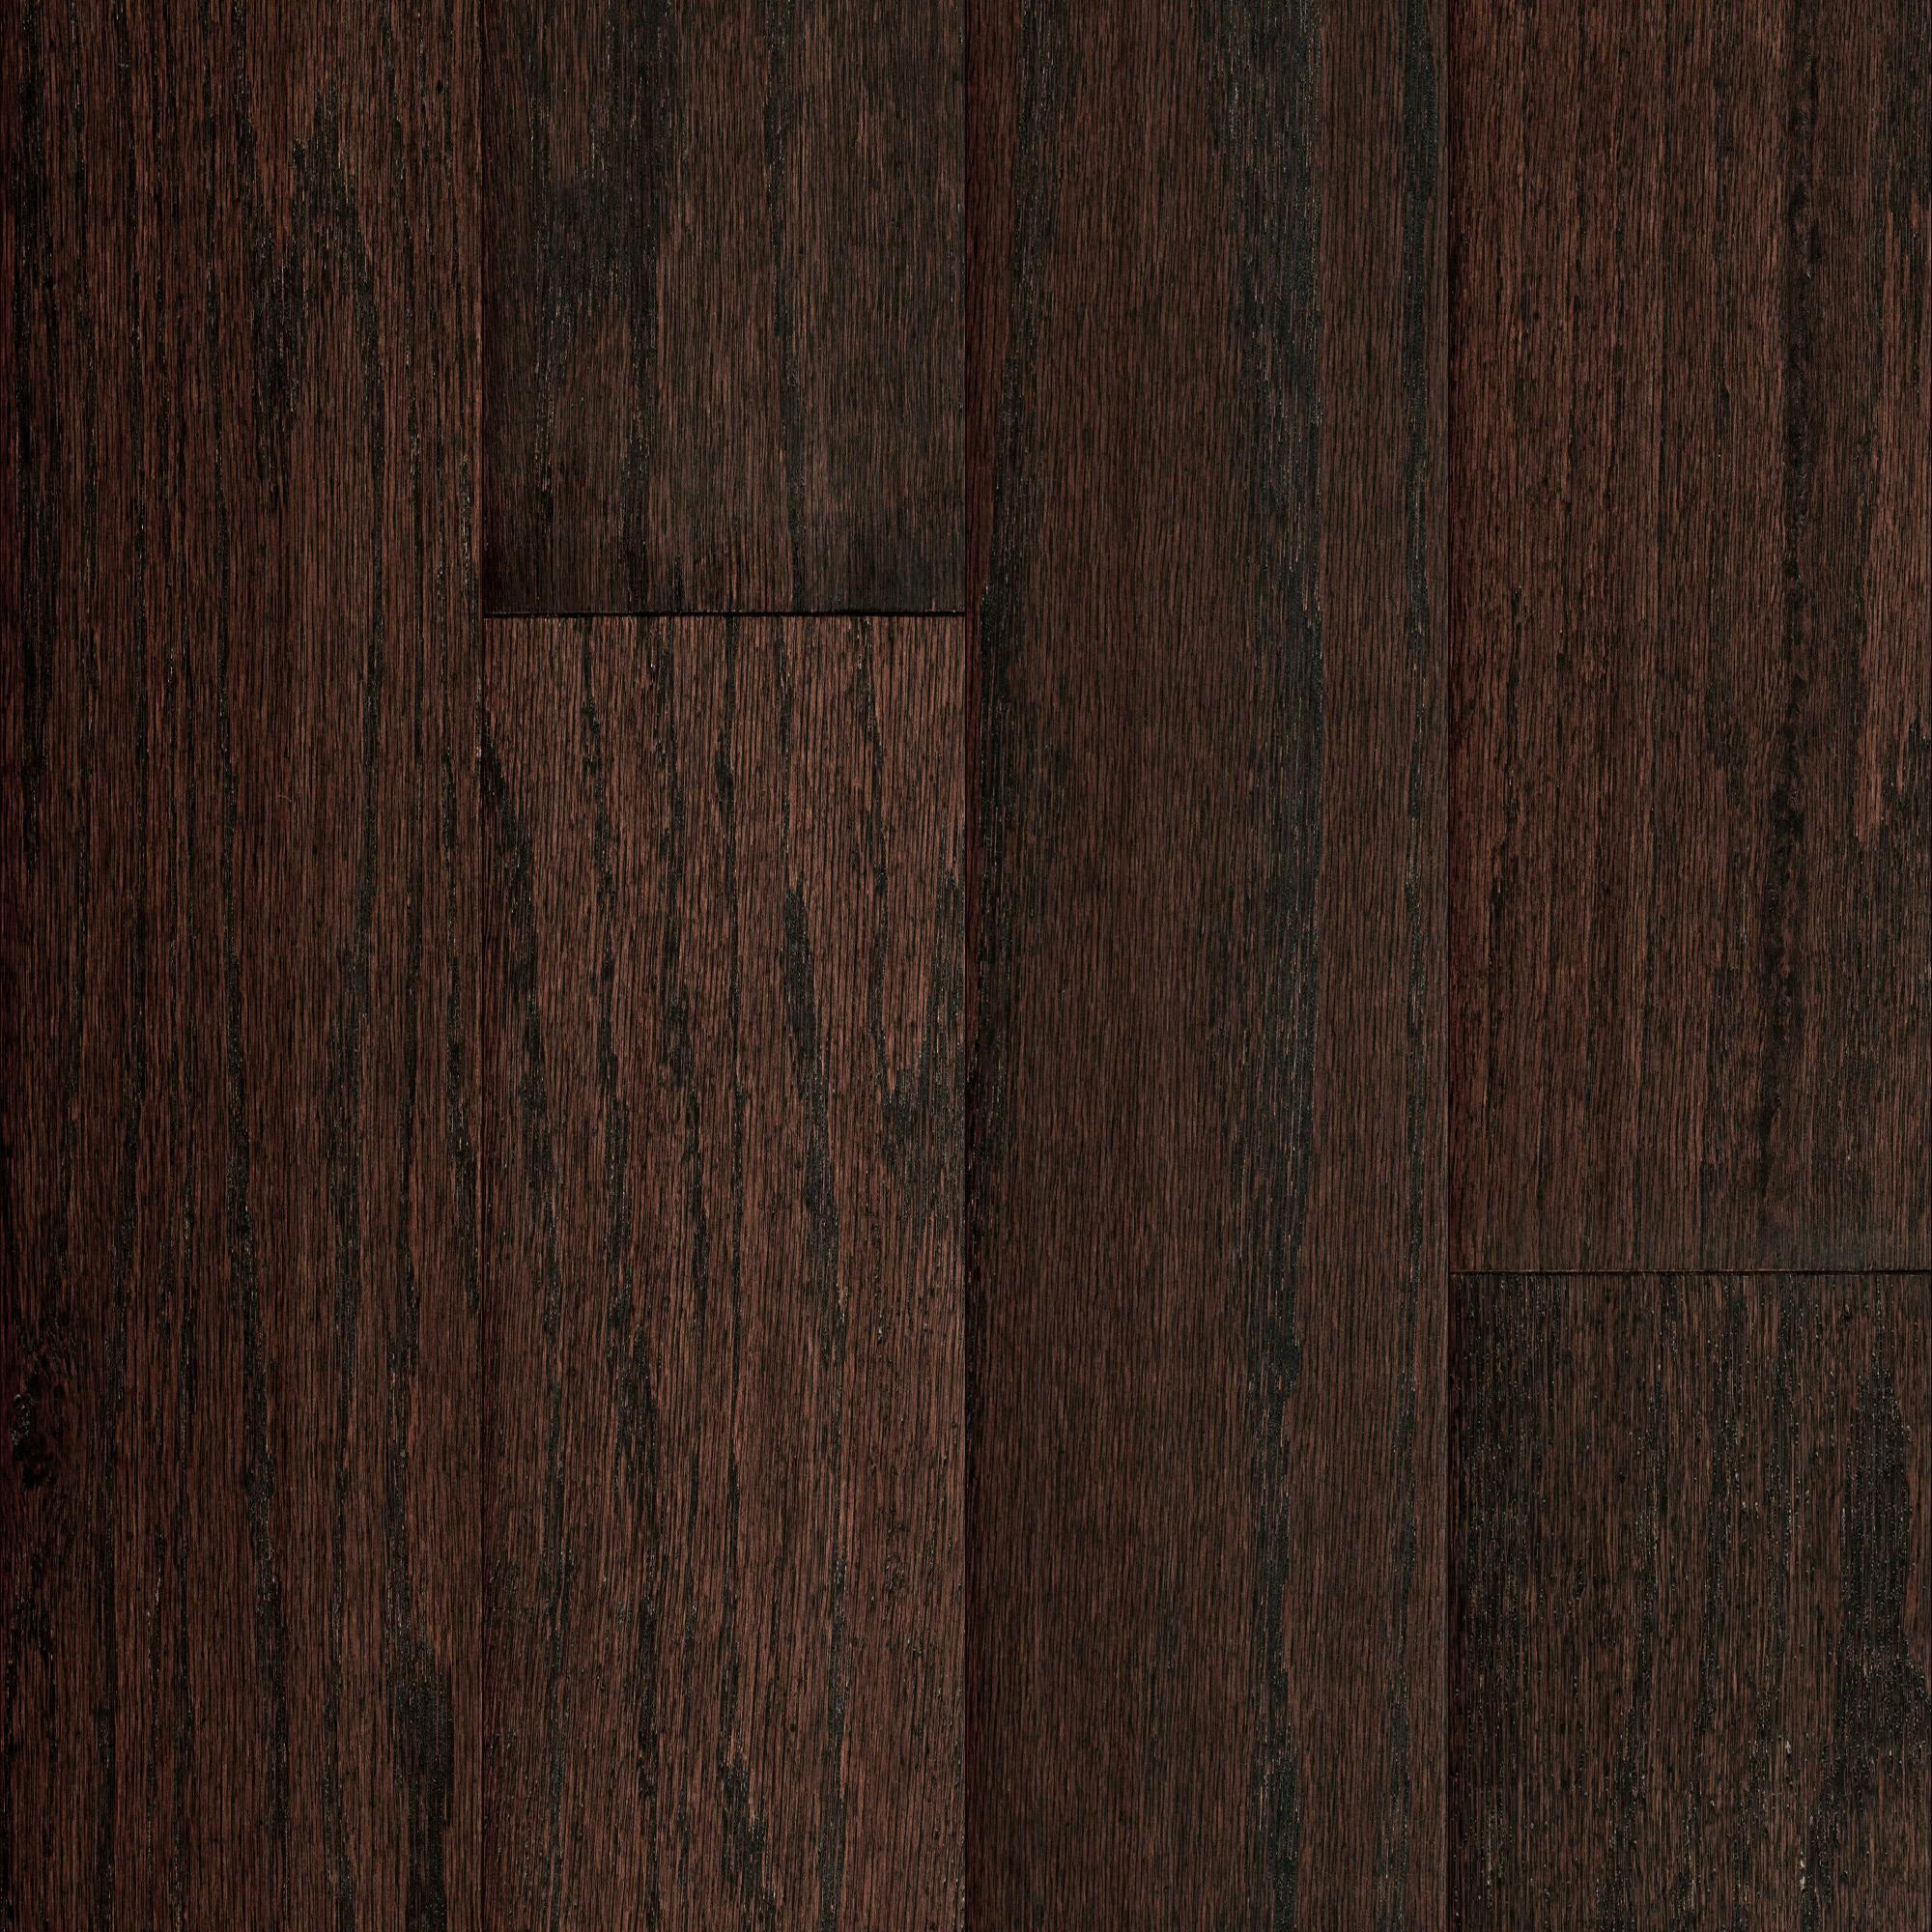 Wide Plank Grey Hardwood Flooring Of Mullican Newtown Plank Oak Bridle 1 2 Thick 5 Wide Engineered Intended for Mullican Newtown Plank Oak Bridle 1 2 Thick 5 Wide Engineered Hardwood Flooring